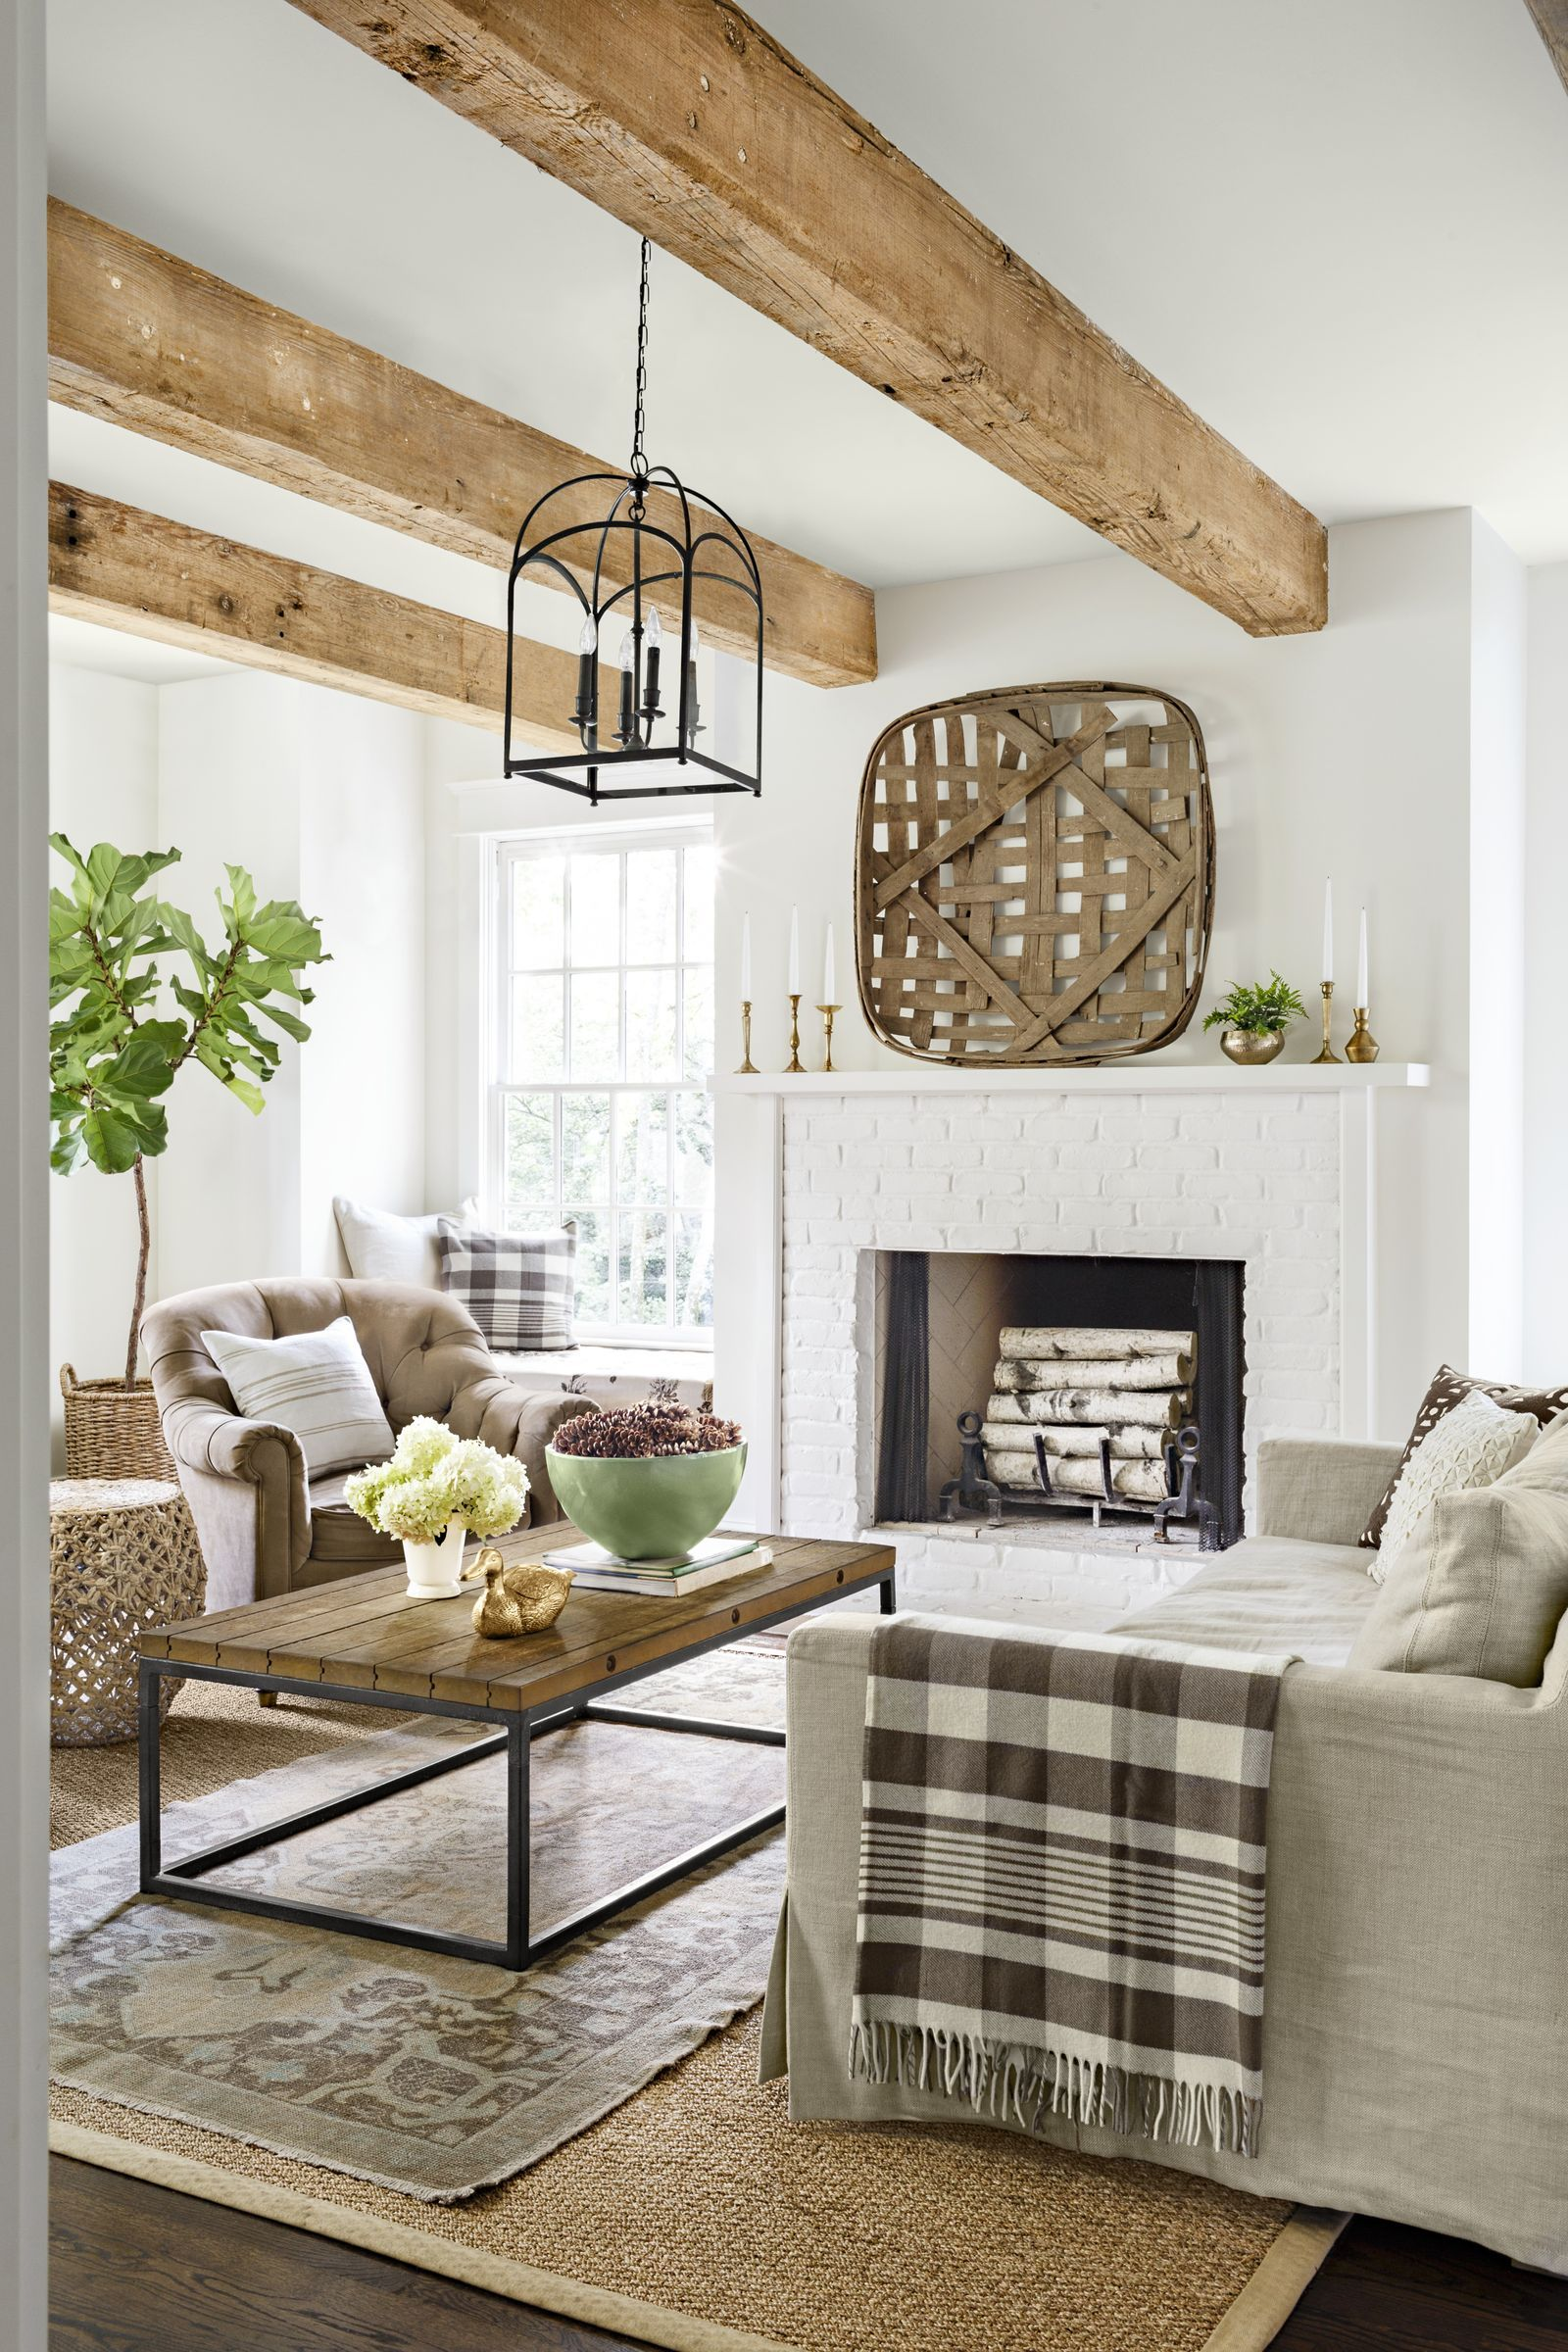 Create a Cozy, Cabin-Like Space With These Rustic Décor ...